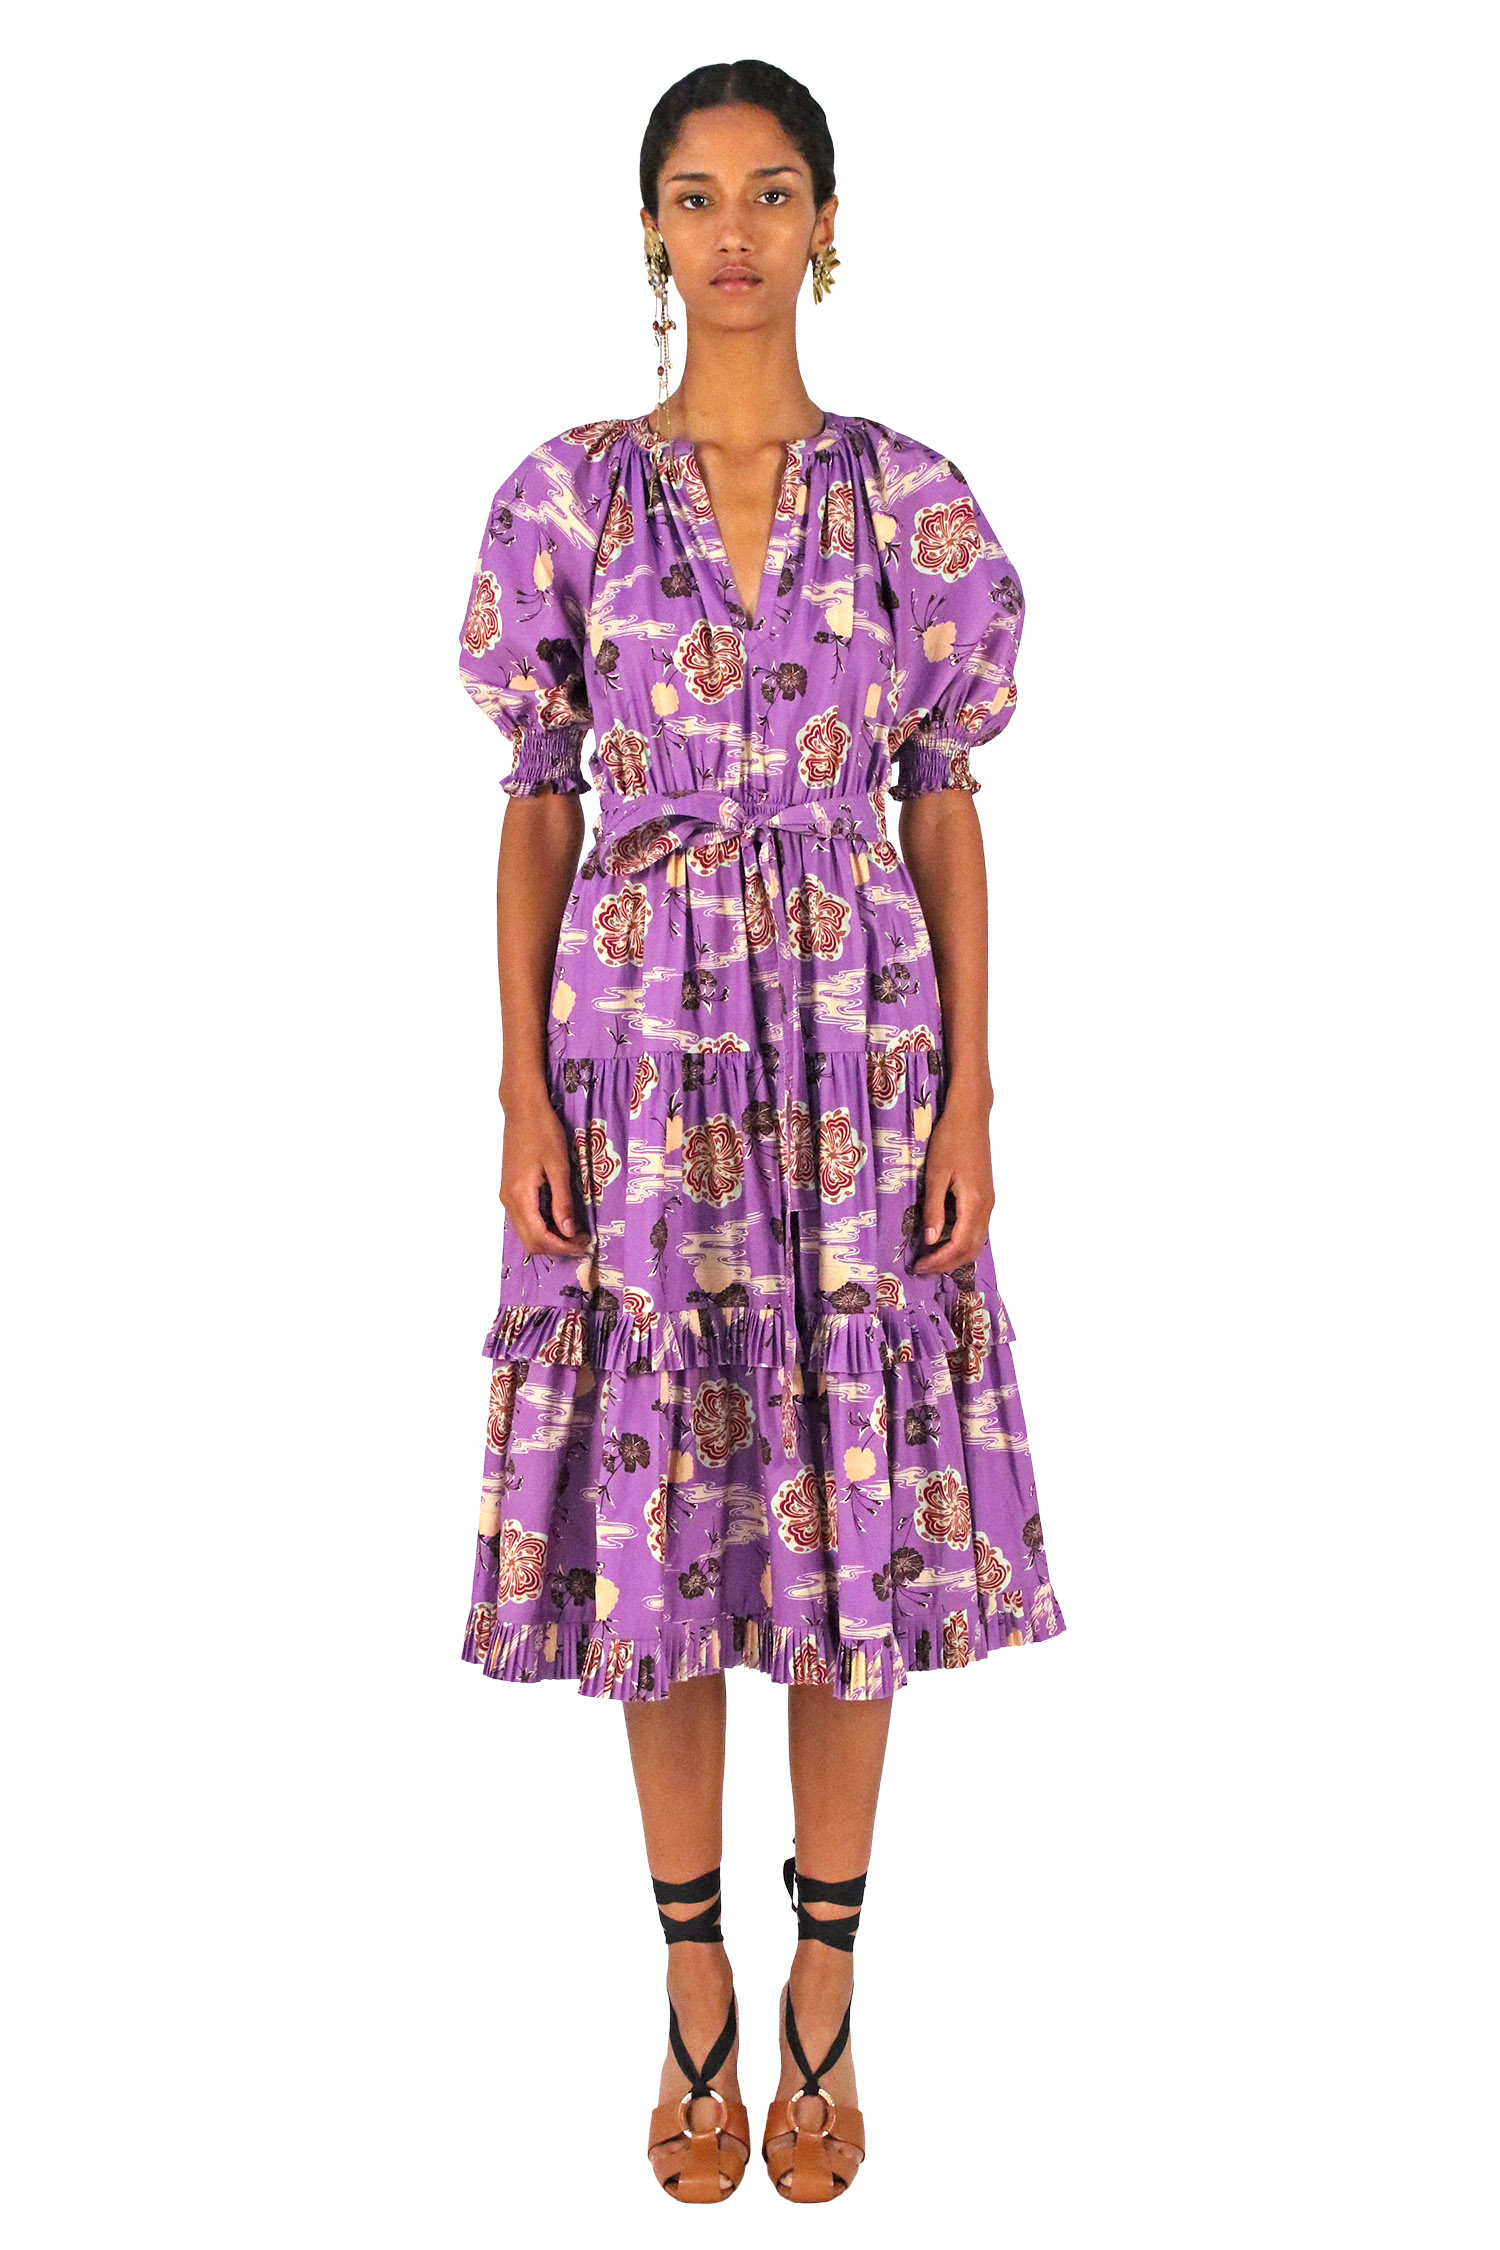 Ulla Johnson, Sommerkleid, Dasha, Kleid